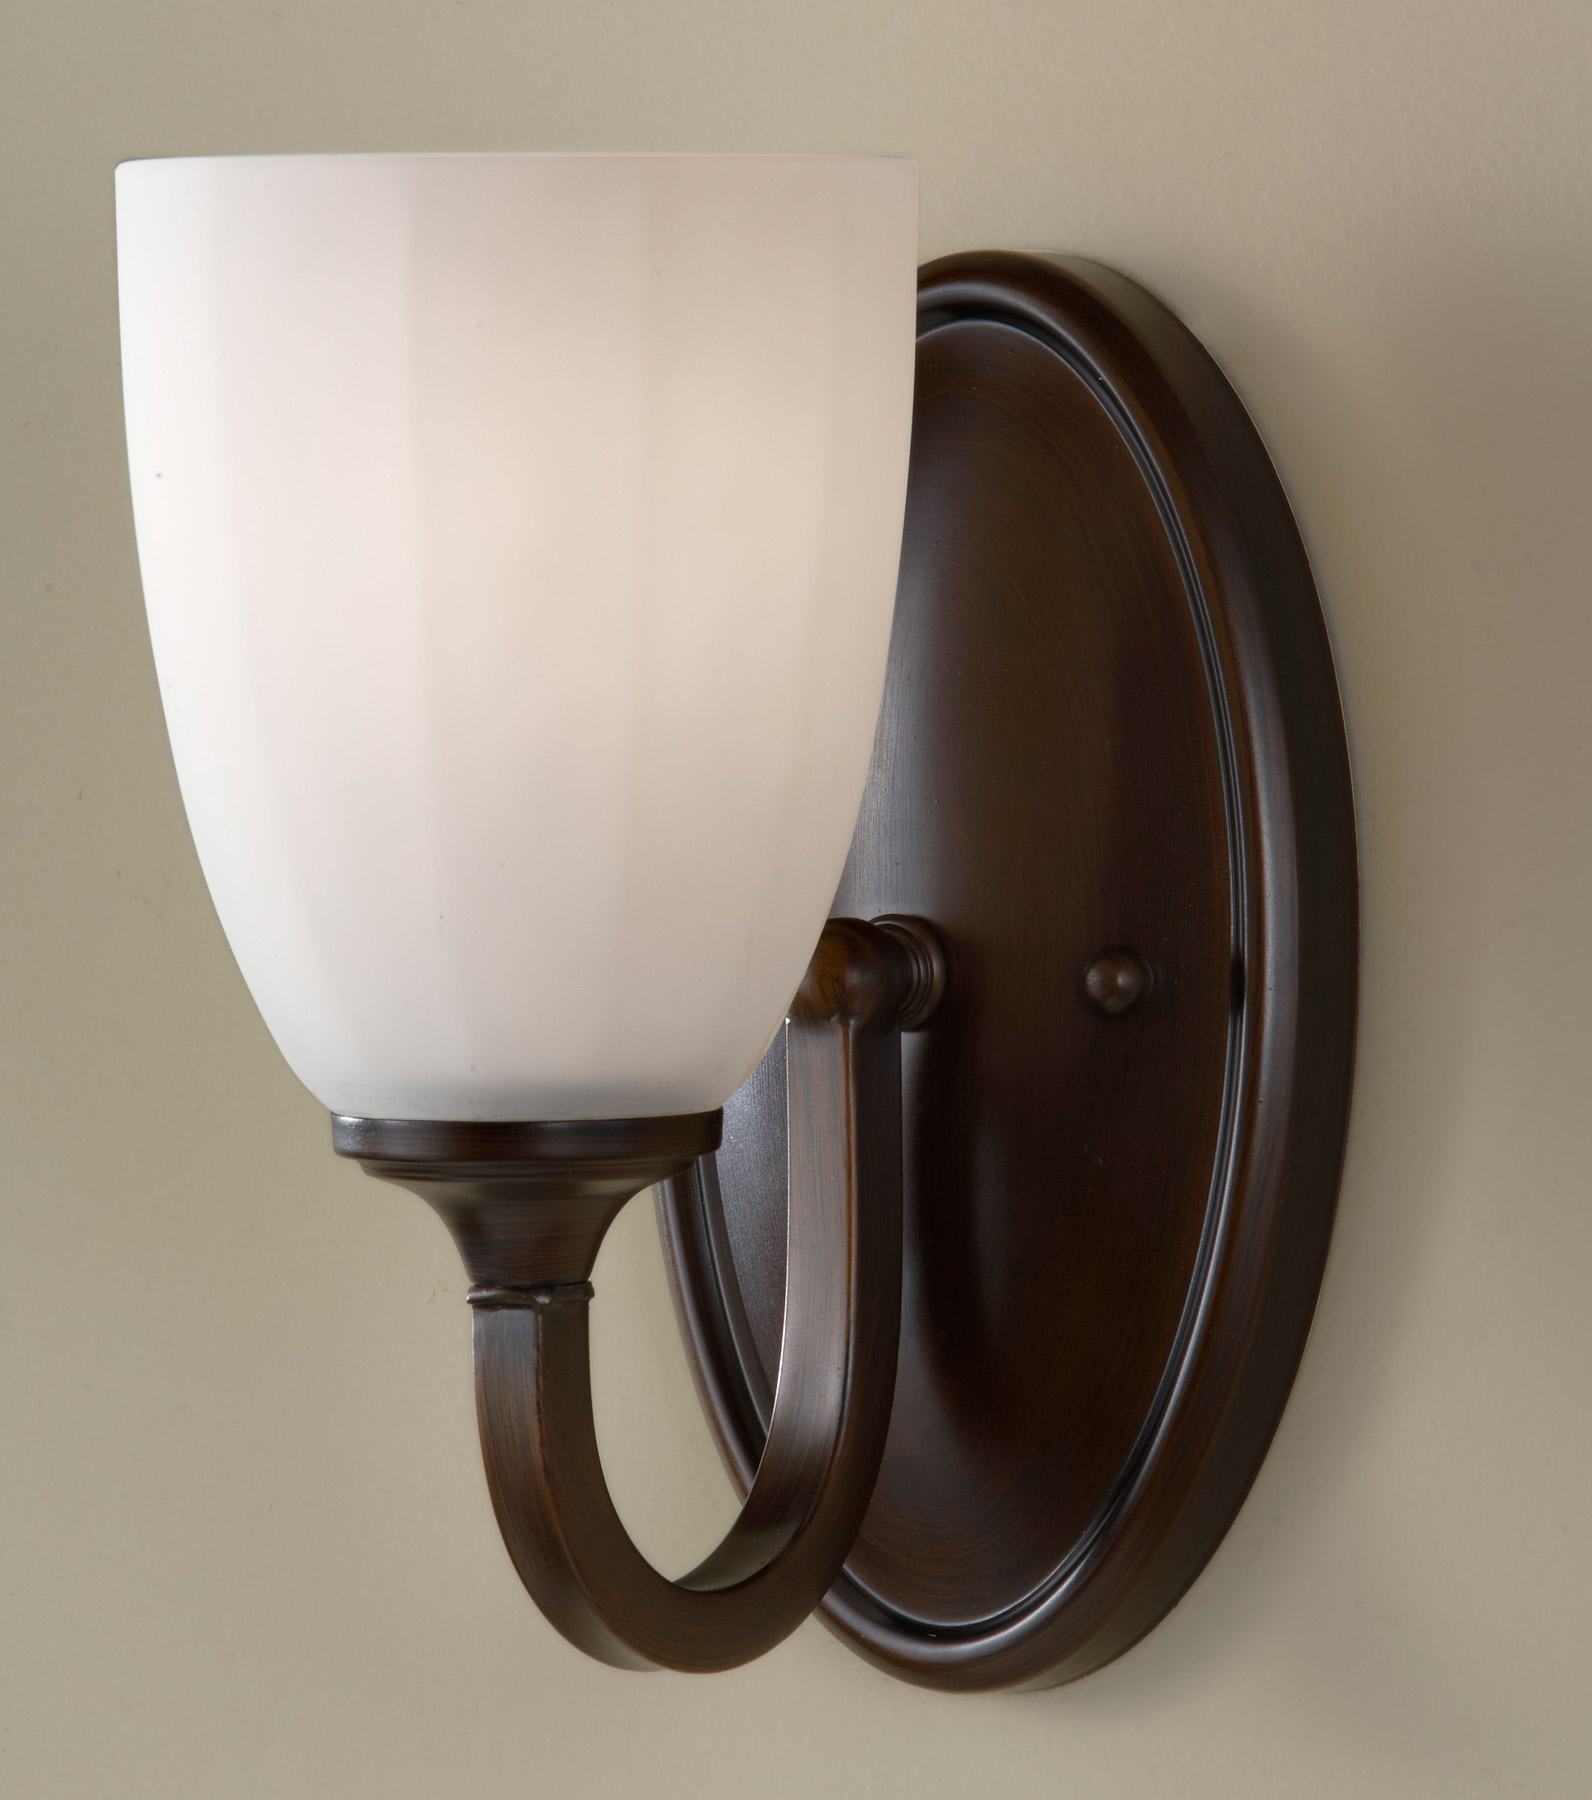 Murray Feiss Vs17401 Htbz Perry Wall Sconce